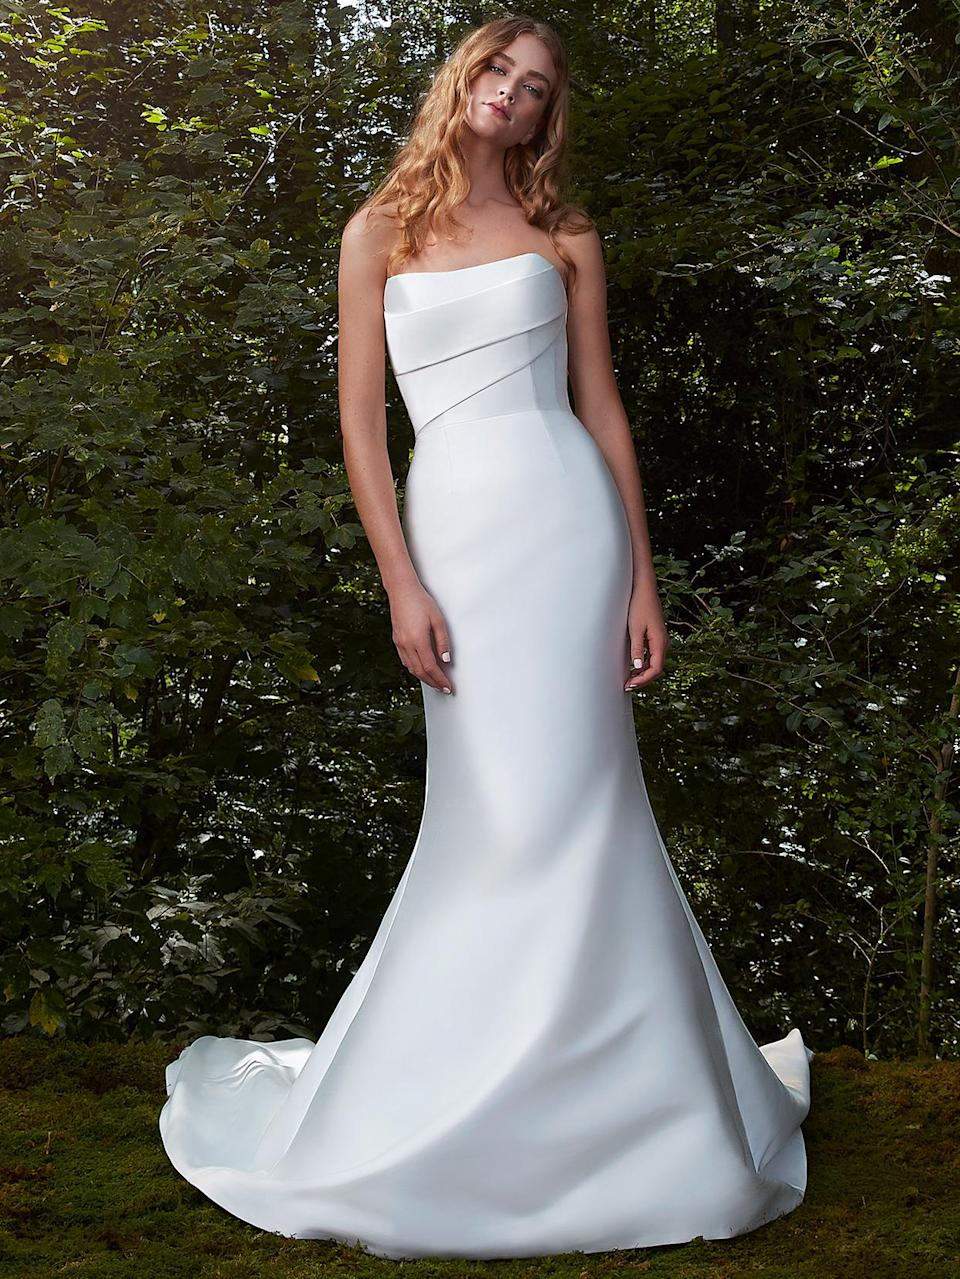 "<p>In a time of great uncertainty, the Anne Barge Fall 2021 wedding dress collection offers a welcome retreat. The just-debuted series ""is a haven of tranquility,"" reads the label's press release, and offers some ""serenity <a href=""https://www.marthastewart.com/7868538/coronavirus-covid19-wedding-planning"" rel=""nofollow noopener"" target=""_blank"" data-ylk=""slk:during a year of unprecedented challenges"" class=""link rapid-noclick-resp"">during a year of unprecedented challenges</a>."" Like so many of us, Barge turned to nature—where the Atlanta-based creative spent her time in quarantine surrounded by the bountiful greenery in her home state of Georgia—for solace and inspiration while ideating <a href=""https://www.marthastewart.com/600304/wedding-dresses"" rel=""nofollow noopener"" target=""_blank"" data-ylk=""slk:each and every gown"" class=""link rapid-noclick-resp"">each and every gown</a>. It makes sense, then, that the final creations are symbols of ""prosperity, freshness, and growth.""</p> <p>Nature-driven details are woven throughout this collection of dreamy gowns, composed of the finest Italian Mikado scuba, oversized floral Chantilly lace, and charmeuse fabrics. Whimsical motifs, like embroidered organza blossoms with petite beaded blooms, 3D floral vines, and fall foliage appliqués, speak to the more organic side of the collection—which <em>does</em>, however, have a daring facet. The more avant-garde ensembles feature plunging V-necklines and <a href=""https://www.marthastewart.com/7947831/wedding-dress-shopping-tips"" rel=""nofollow noopener"" target=""_blank"" data-ylk=""slk:exaggerated dropped waist"" class=""link rapid-noclick-resp"">exaggerated dropped waist</a> silhouettes, delivering on the subtle, but sexy factor the brand is known for. Like Mother Nature, both sides of the series work together, achieving a unique balance—and ensuring that there is something available for just about any bride-to-be, <a href=""https://www.marthastewart.com/7903644/when-start-shopping-wedding-dress"" rel=""nofollow noopener"" target=""_blank"" data-ylk=""slk:whatever her style"" class=""link rapid-noclick-resp"">whatever her style</a>.</p> <p>On the whole, the Anne Barge Fall 2021 bridal collection feels like a walk through the woods or a breath of fresh air—and is perfect for any woman planning a <a href=""https://www.marthastewart.com/7922867/fall-ideas-real-weddings"" rel=""nofollow noopener"" target=""_blank"" data-ylk=""slk:future fall event"" class=""link rapid-noclick-resp"">future fall event</a>, in particular. Natural motifs and symbolism aside, these numbers are simply beautiful and painstakingly crafted. Discover them for yourself in the slides ahead.</p>"